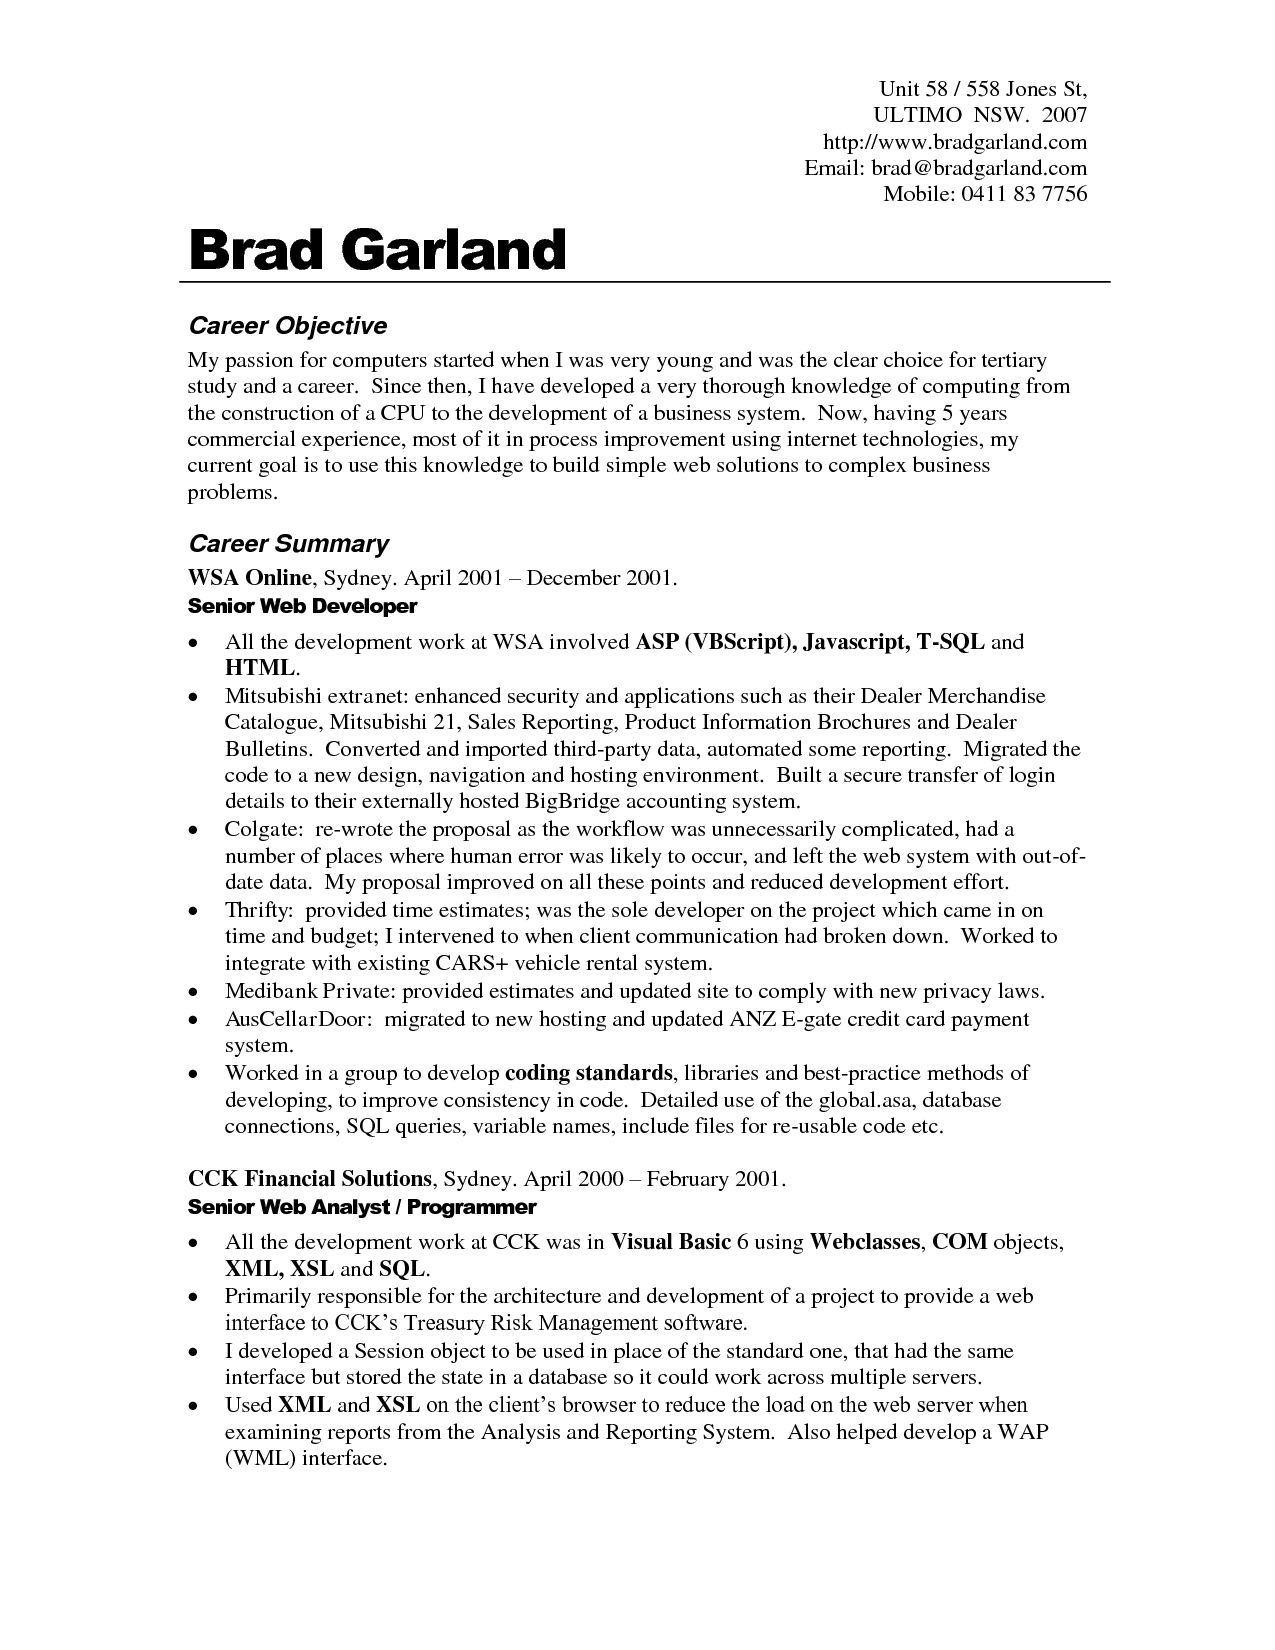 A Good Resume Objective Sample Resume Action Verbs For Lawyers Formatting Back Post